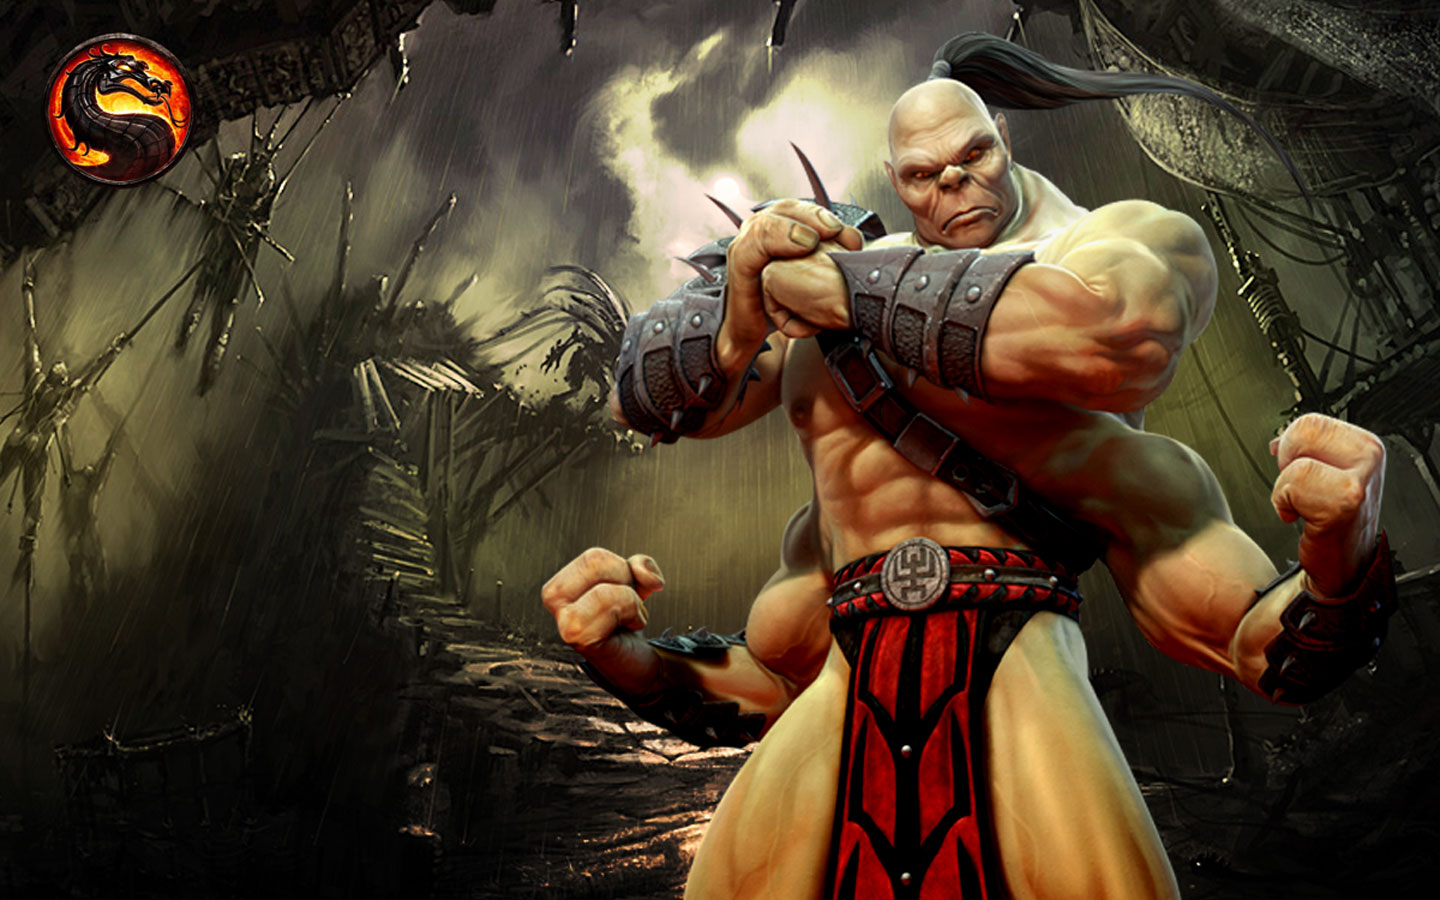 Goro Mortal Kombat Wallpapers HD